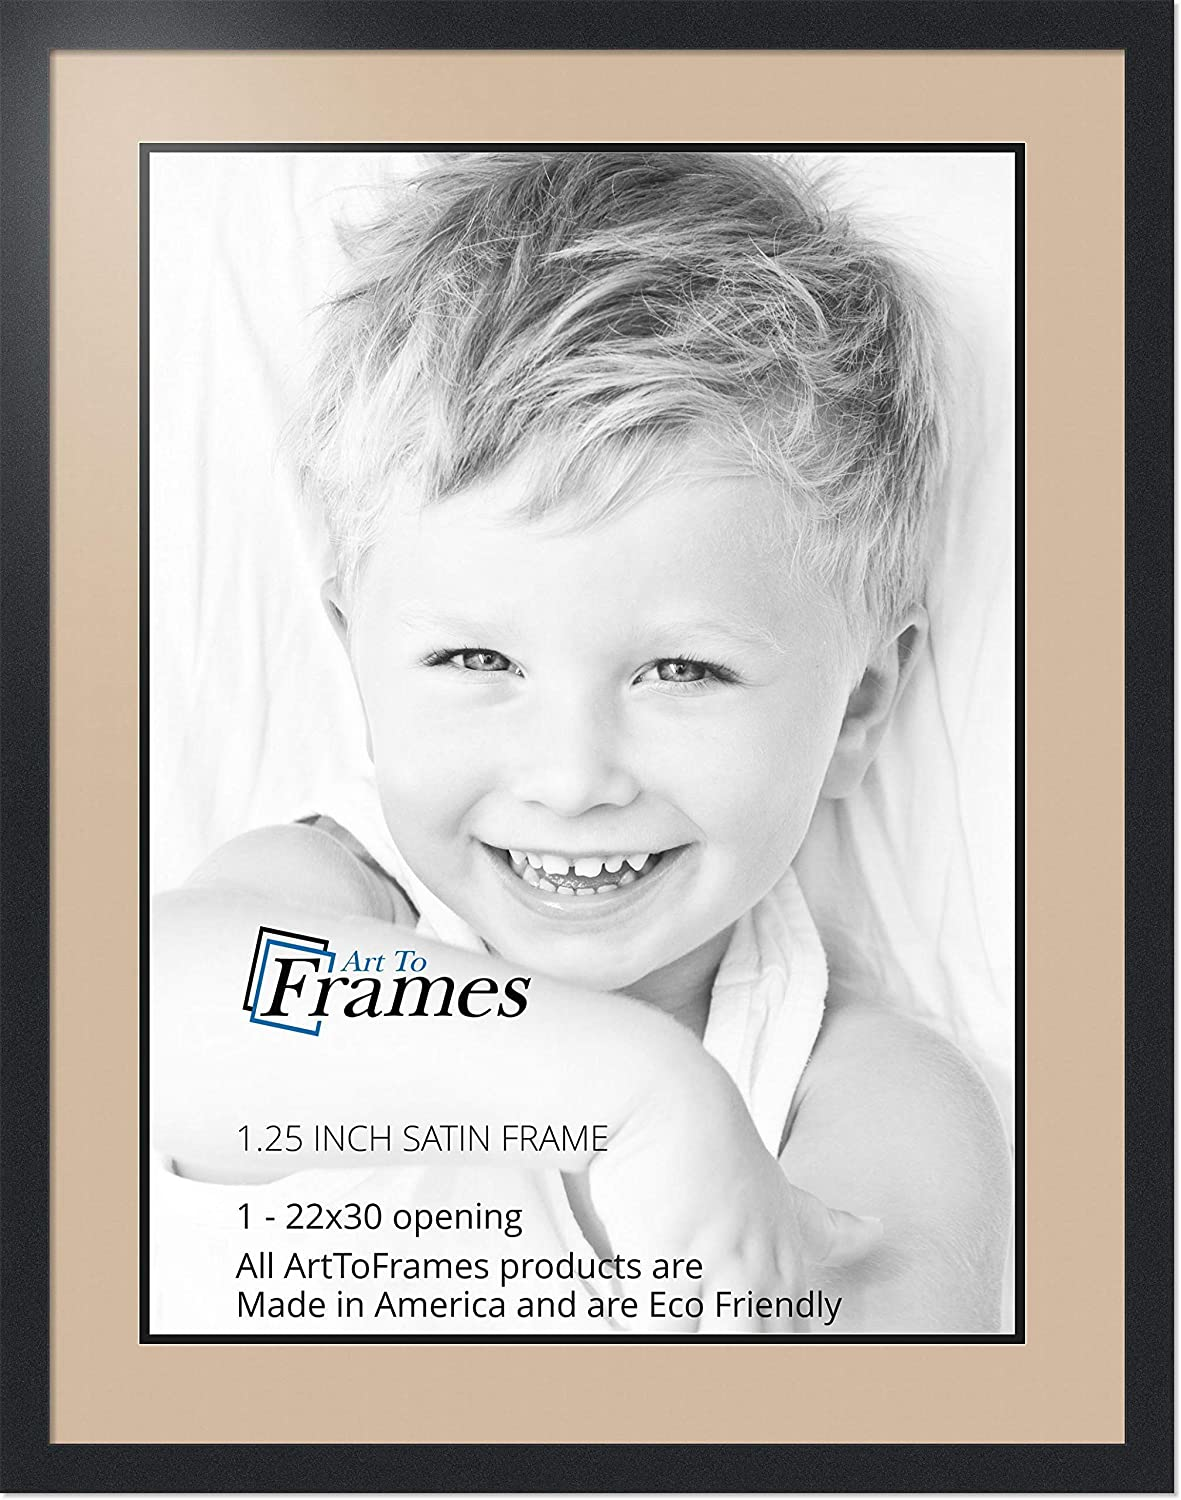 Art to Frames Double-Multimat-1405-782//89-FRBW26079 Collage Photo Frame Double Mat with 1-26x34 Openings and Satin Black Frame